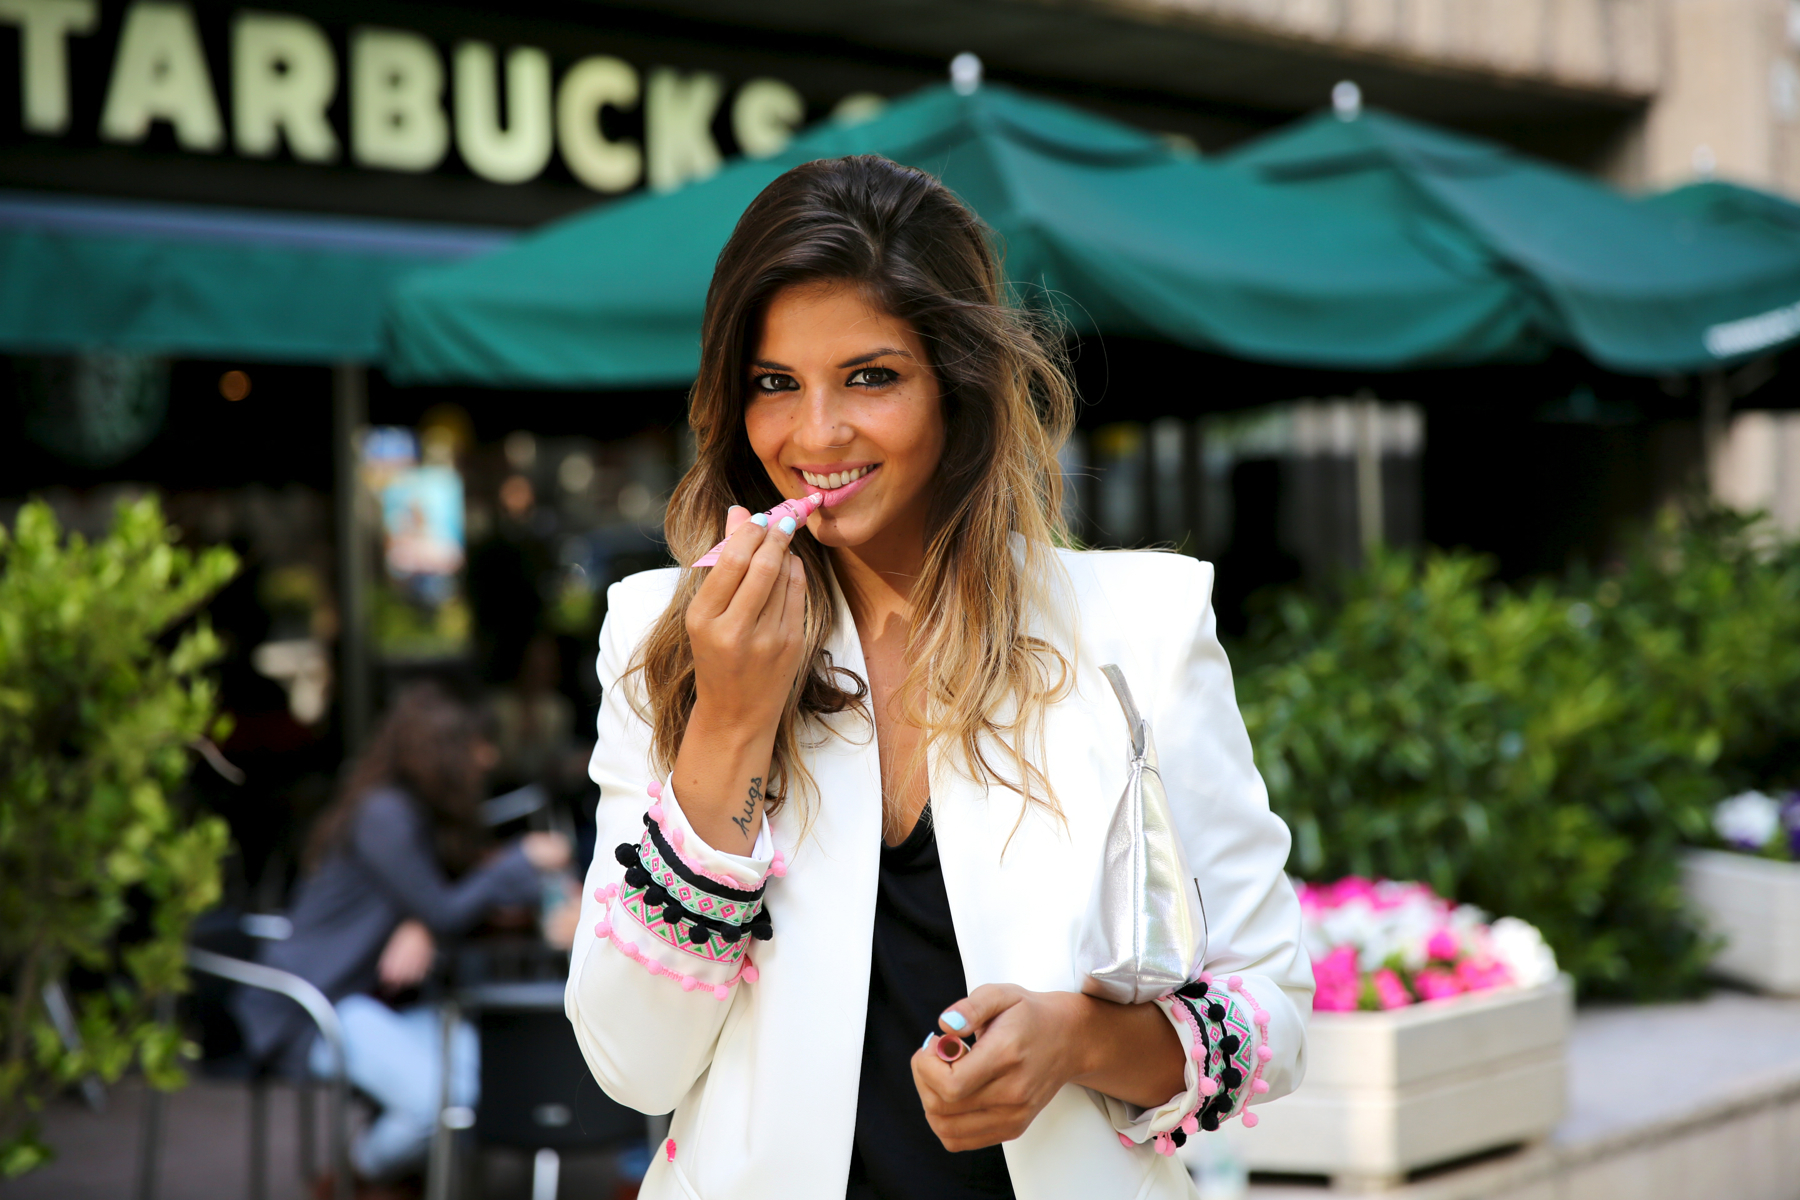 trendy_taste-look-outfit-street_style-ootd-blog-blogger-fashion_spain-moda_españa-starbucks-frapuccino-saint_laurent-falda_cuero-leather_skirt-chic_place-stella_rittwagen-bolso_plata-silver_clutch-20